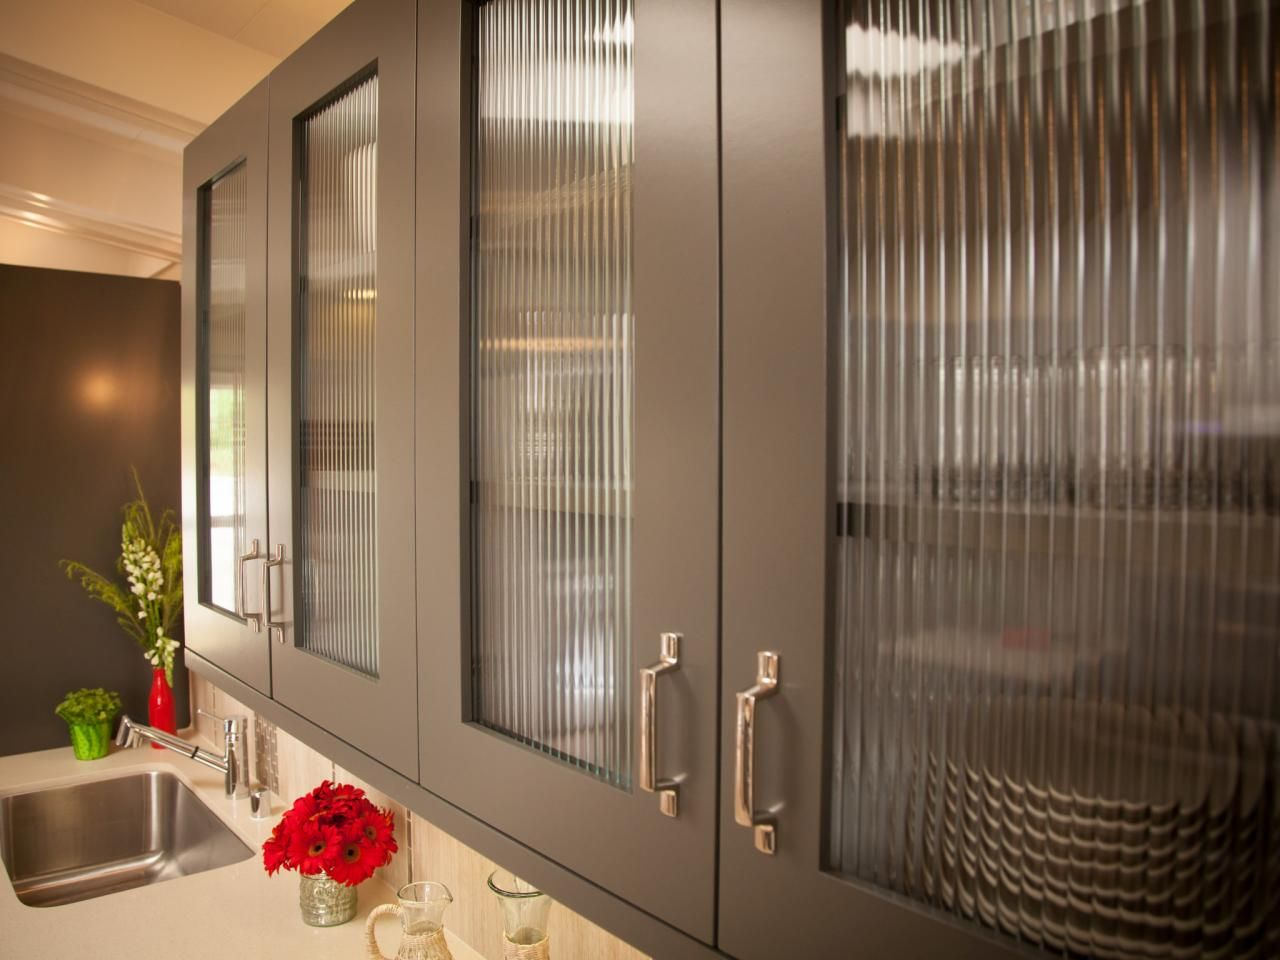 The Glass Doors On These Gray Kitchen Cabinets Lend A Modern Feel To This Kitchen